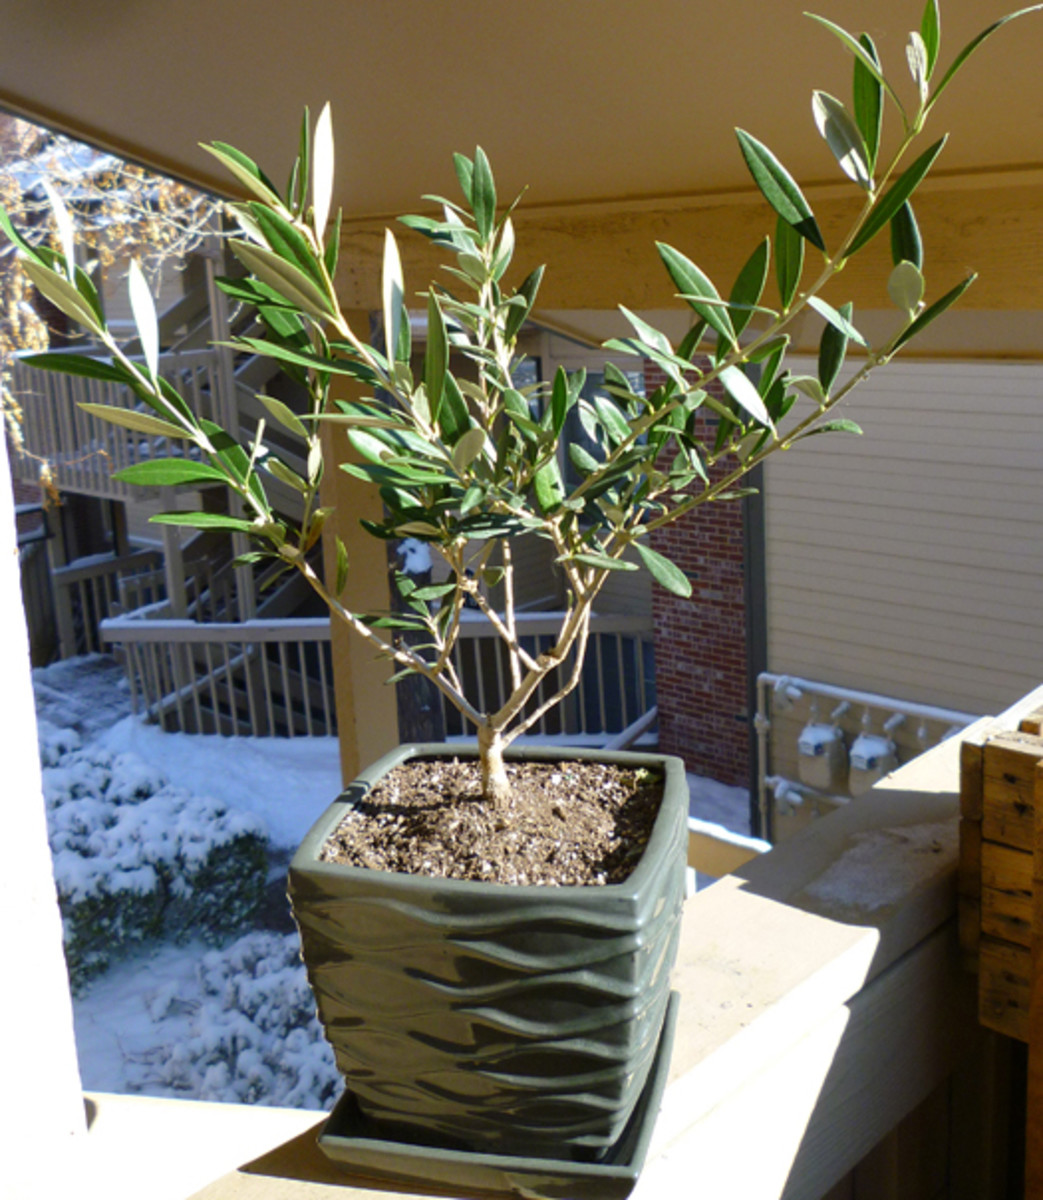 Growing olive trees in containers dengarden for Fertilizing olive trees in pots